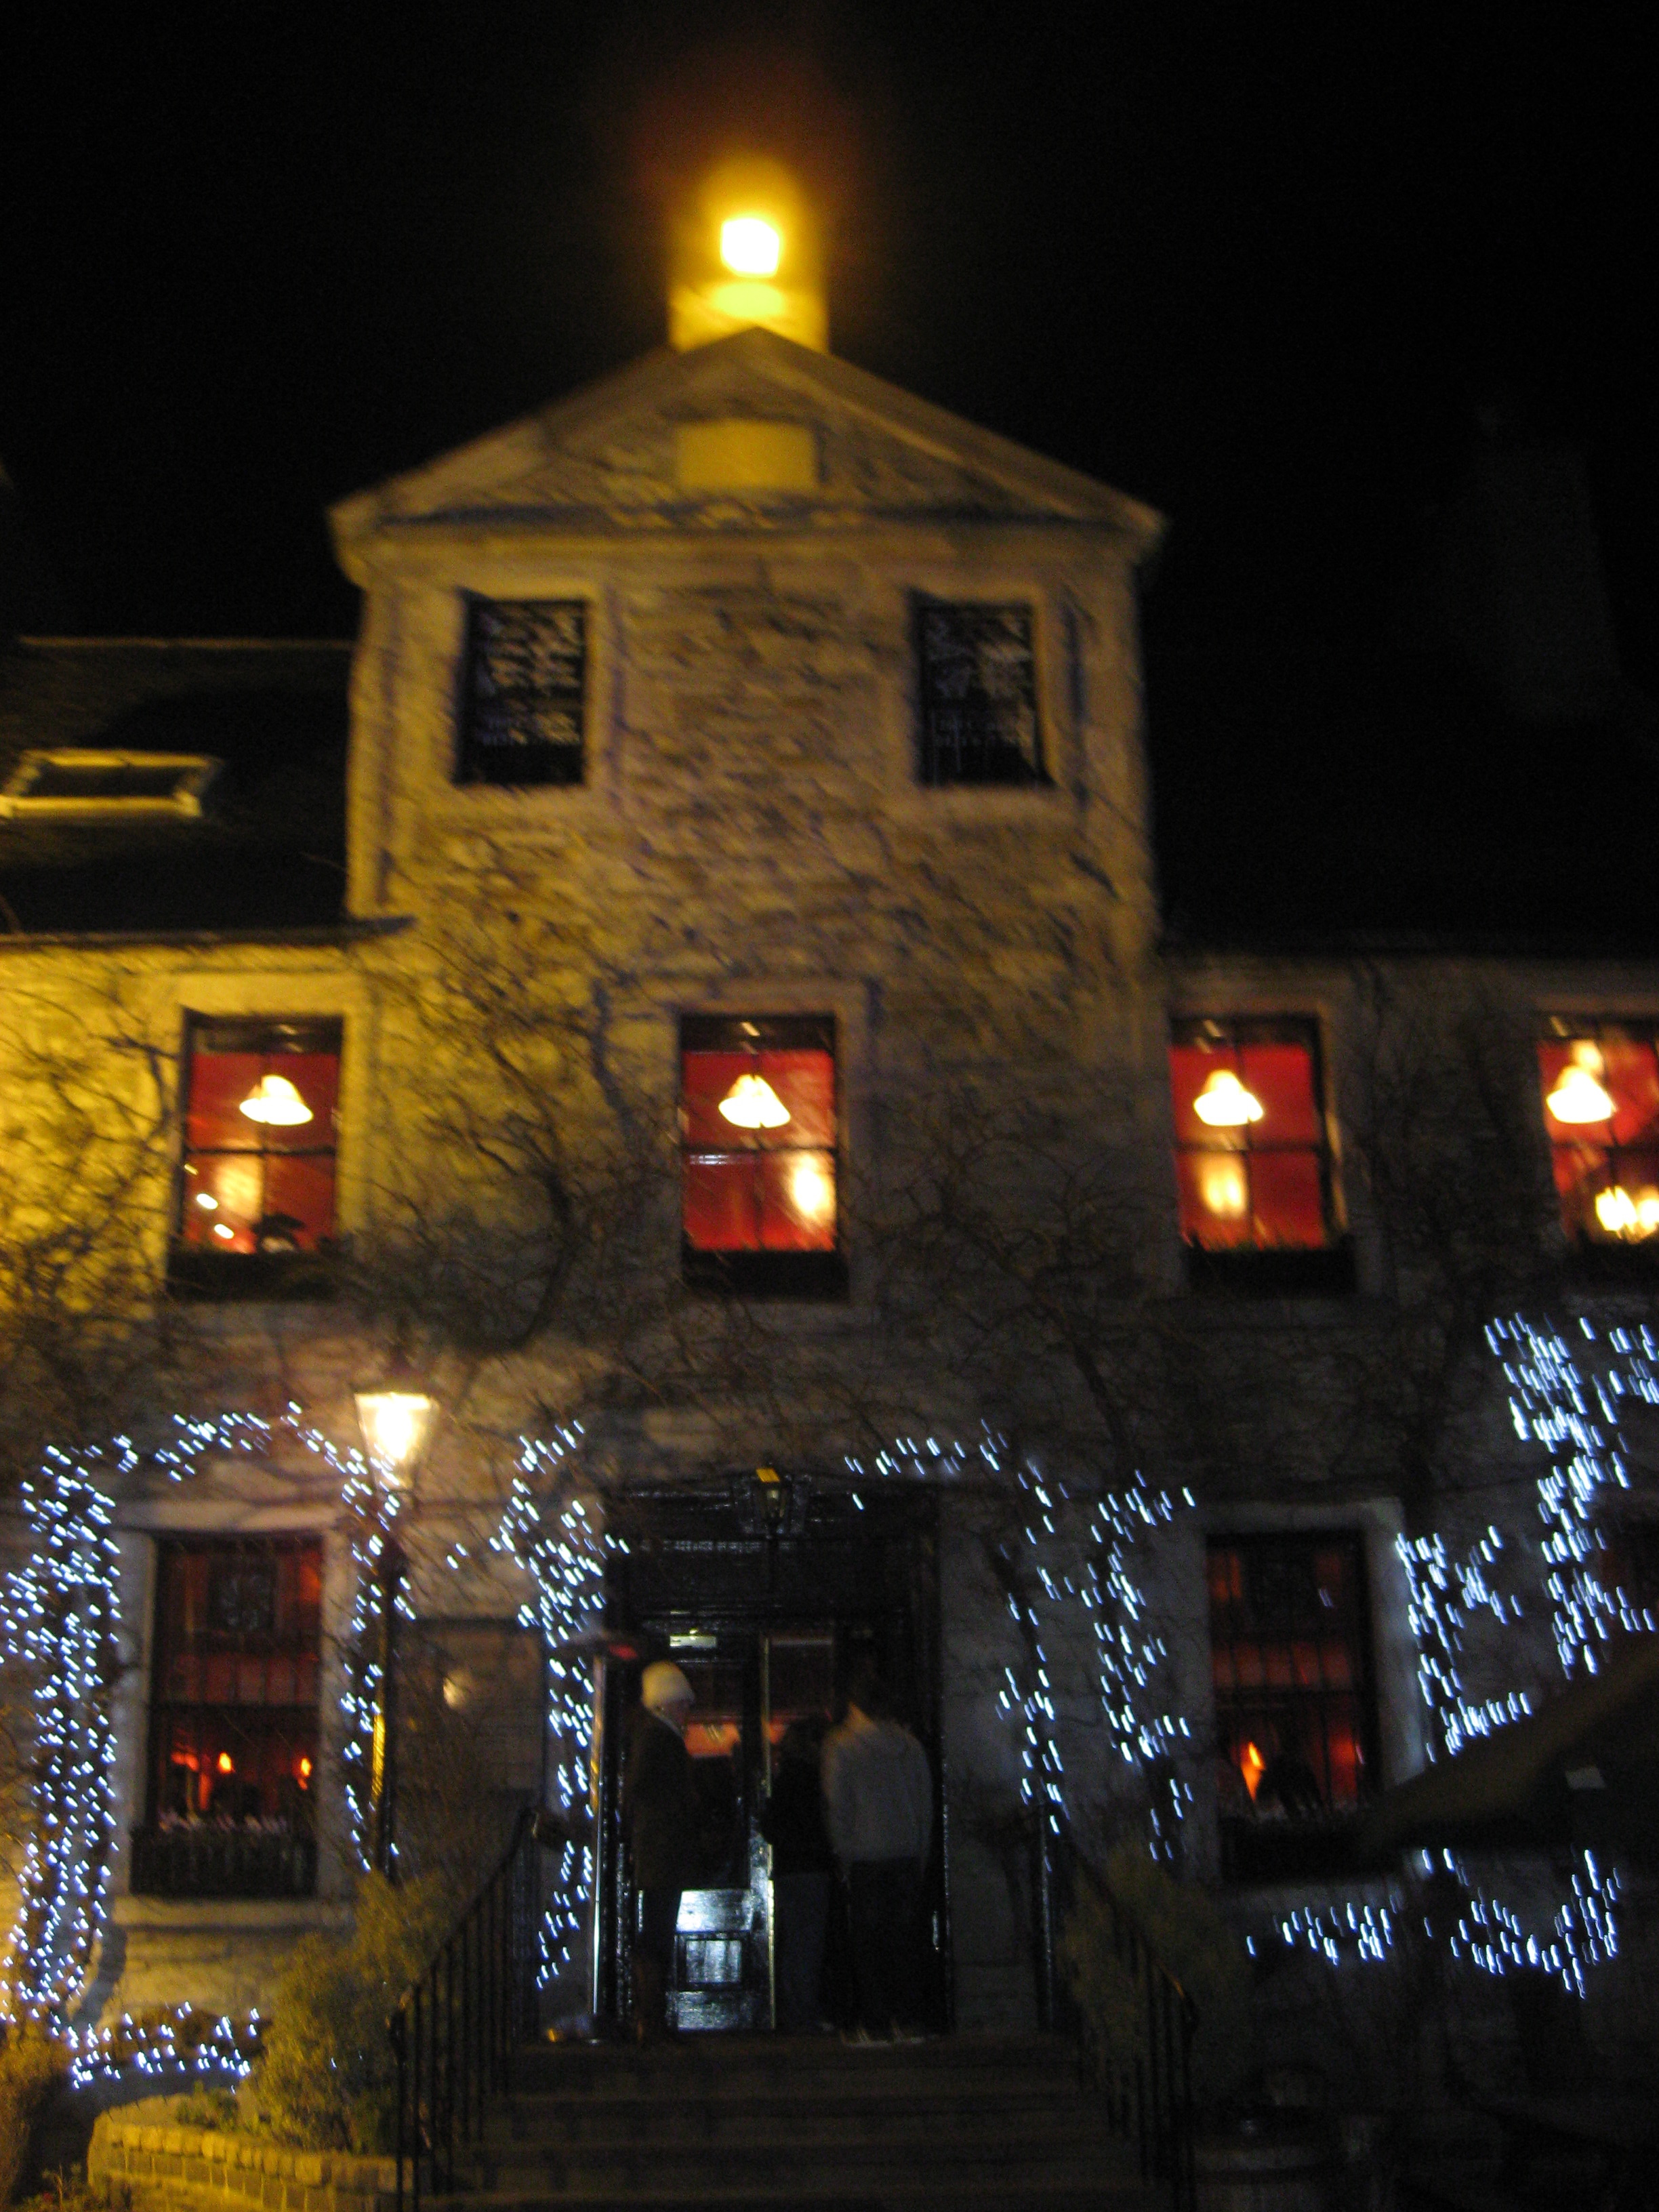 The Pear Tree, Robert Burns's former crib and a stop on the Literary Pub Crawl